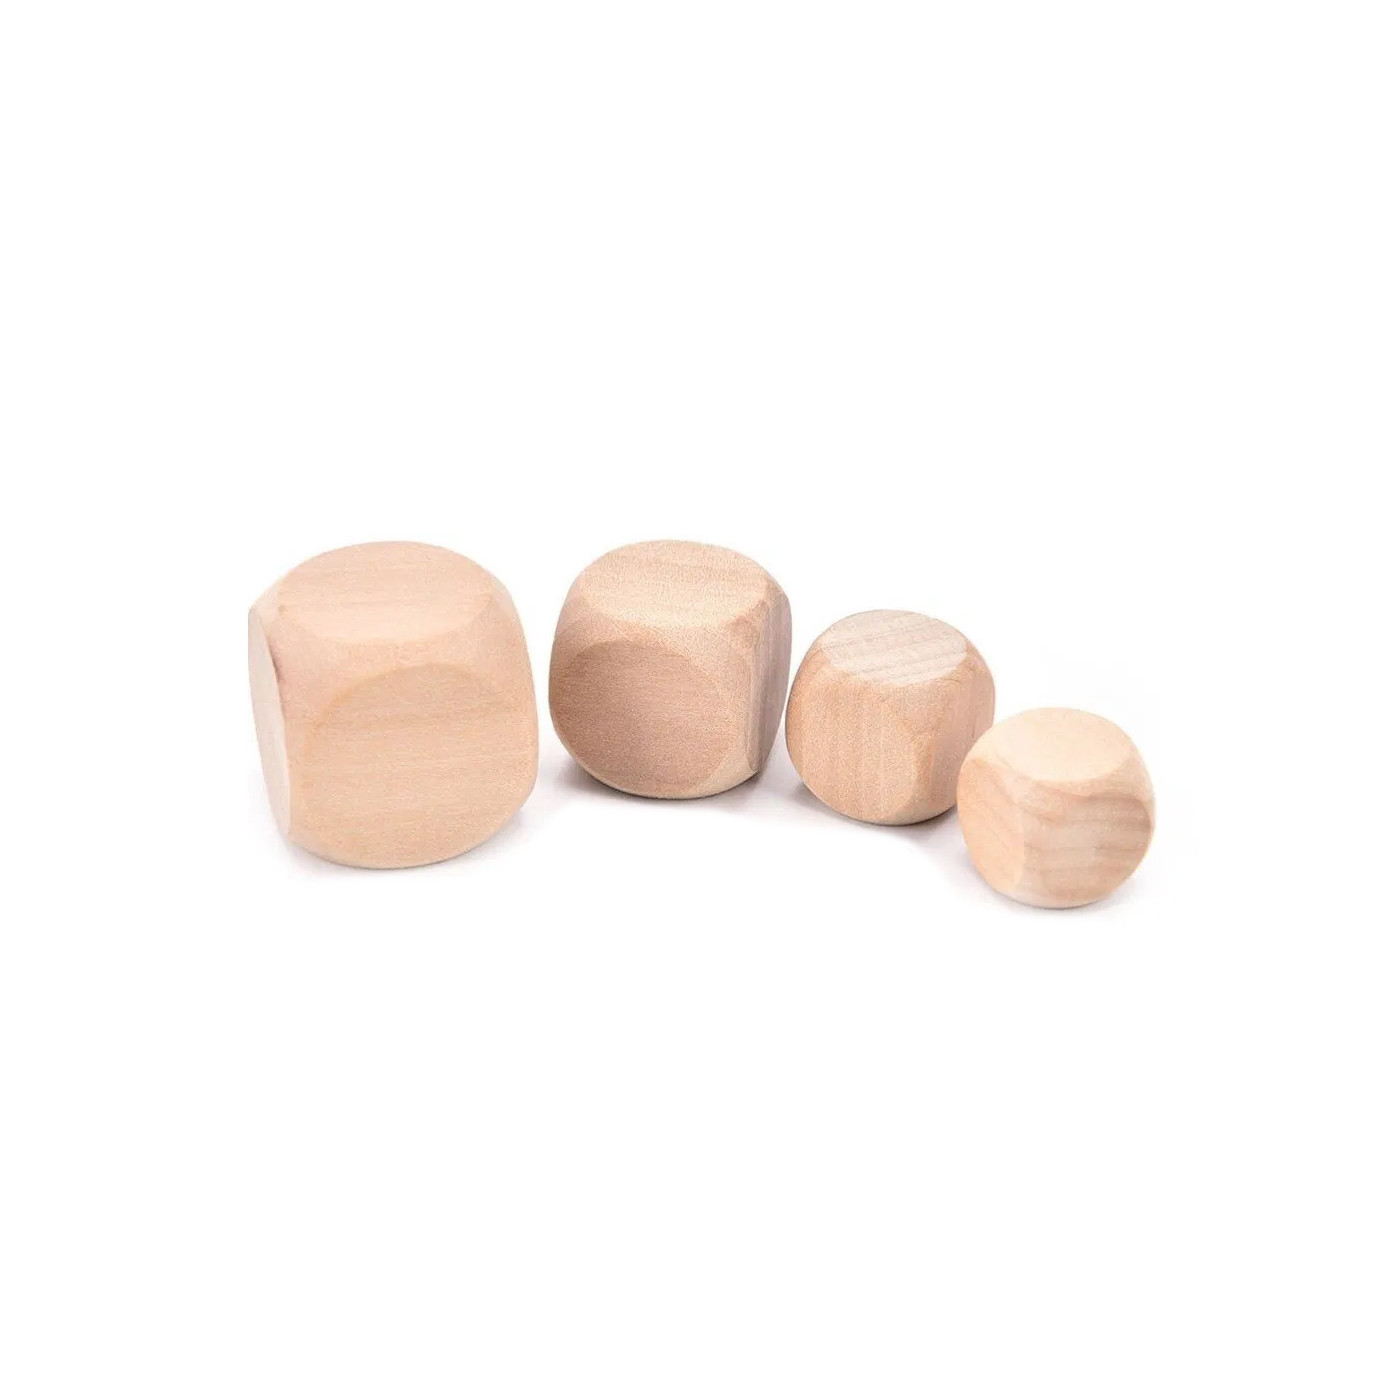 Set of 100 wooden cubes (dice), size: small (8 mm)  - 1